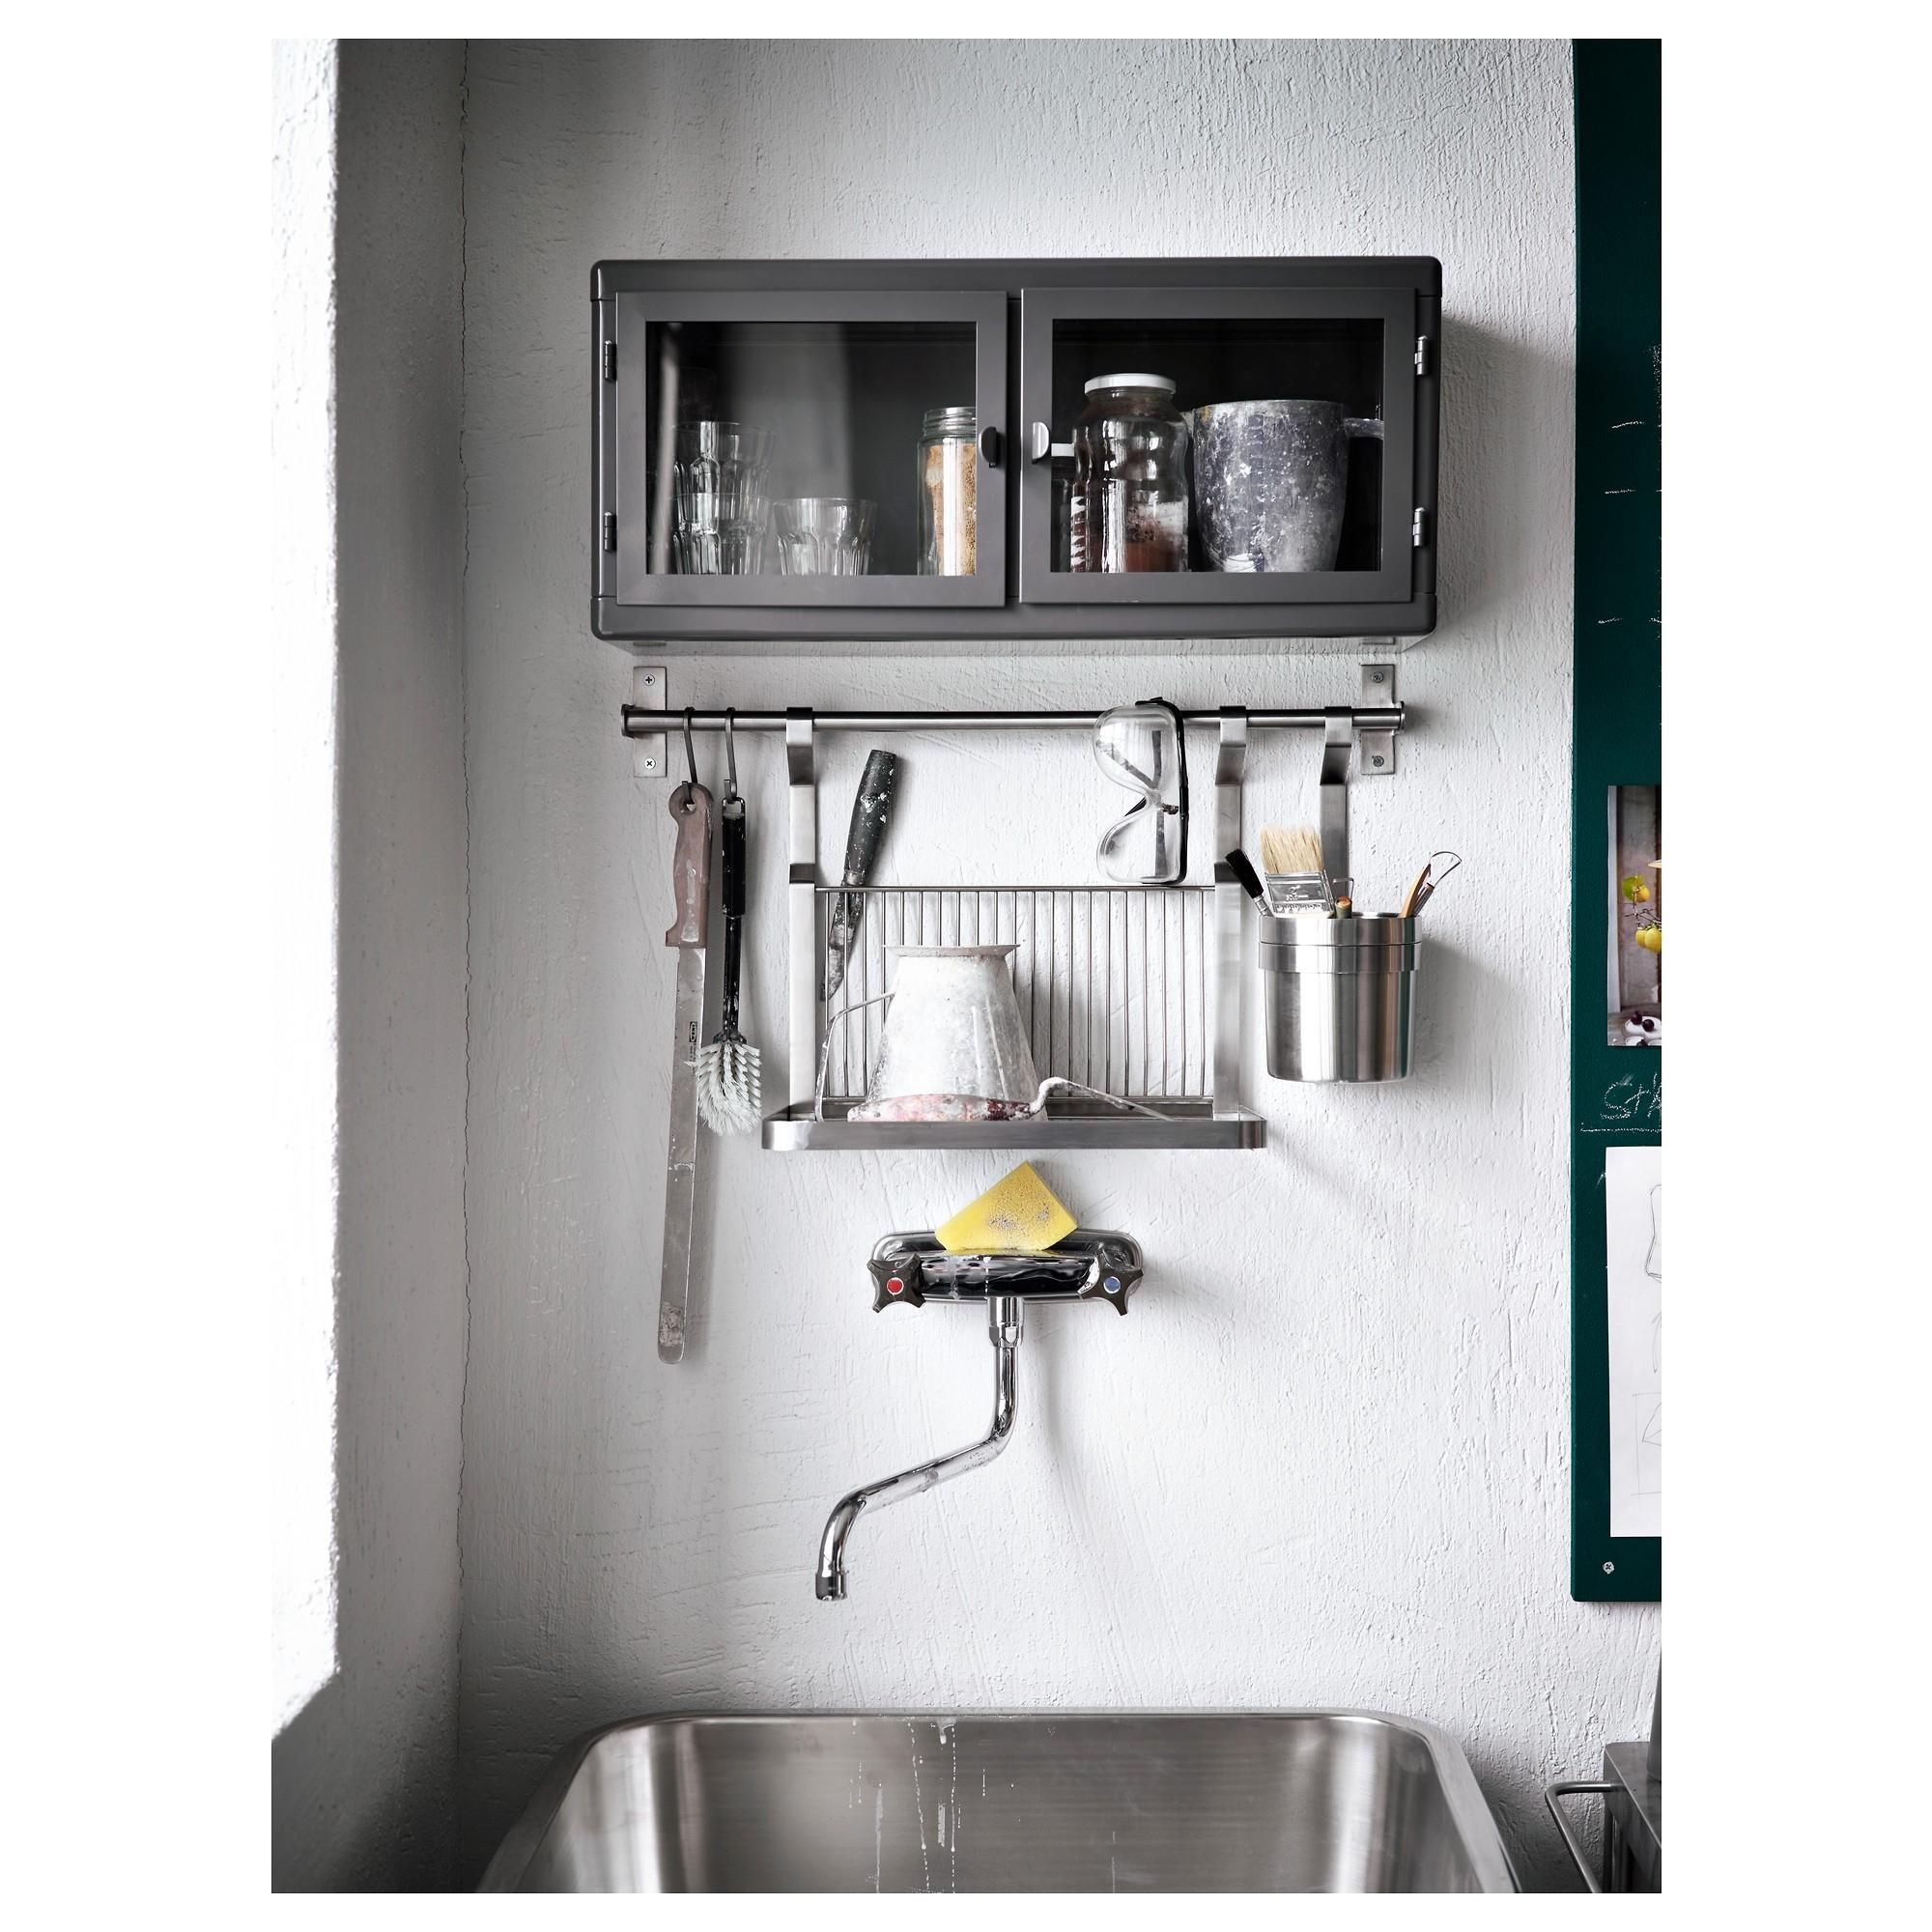 Wood Metal Tiered Shelves Combined White Oven Stove